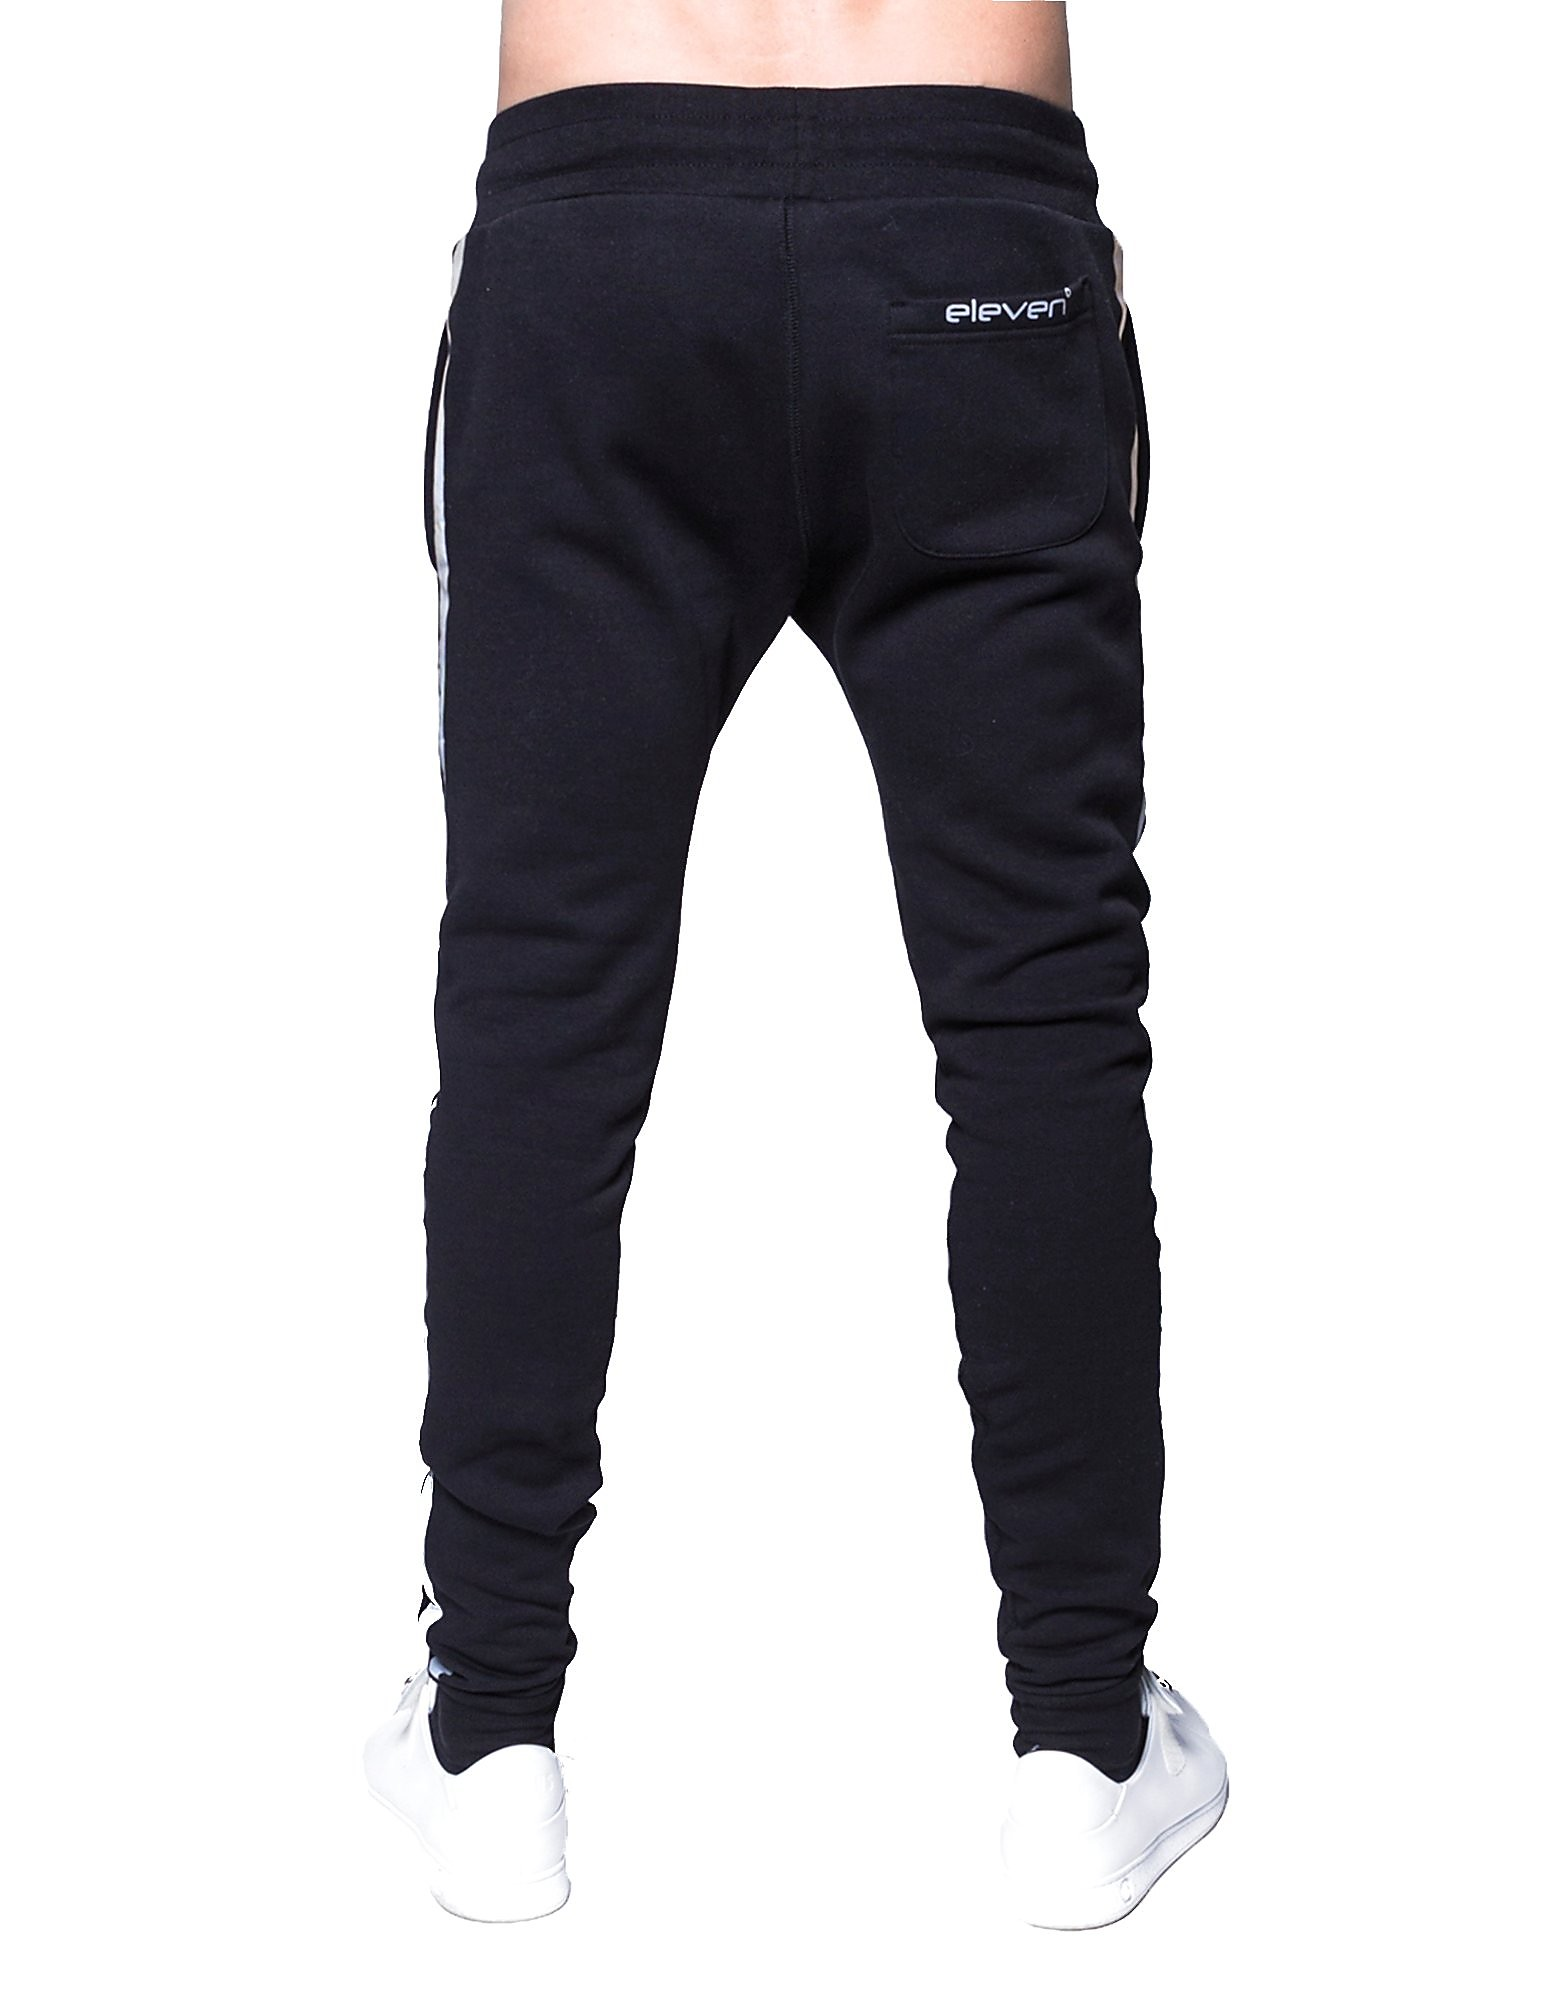 11 Degrees Reflective Side Tape Skinny Joggers